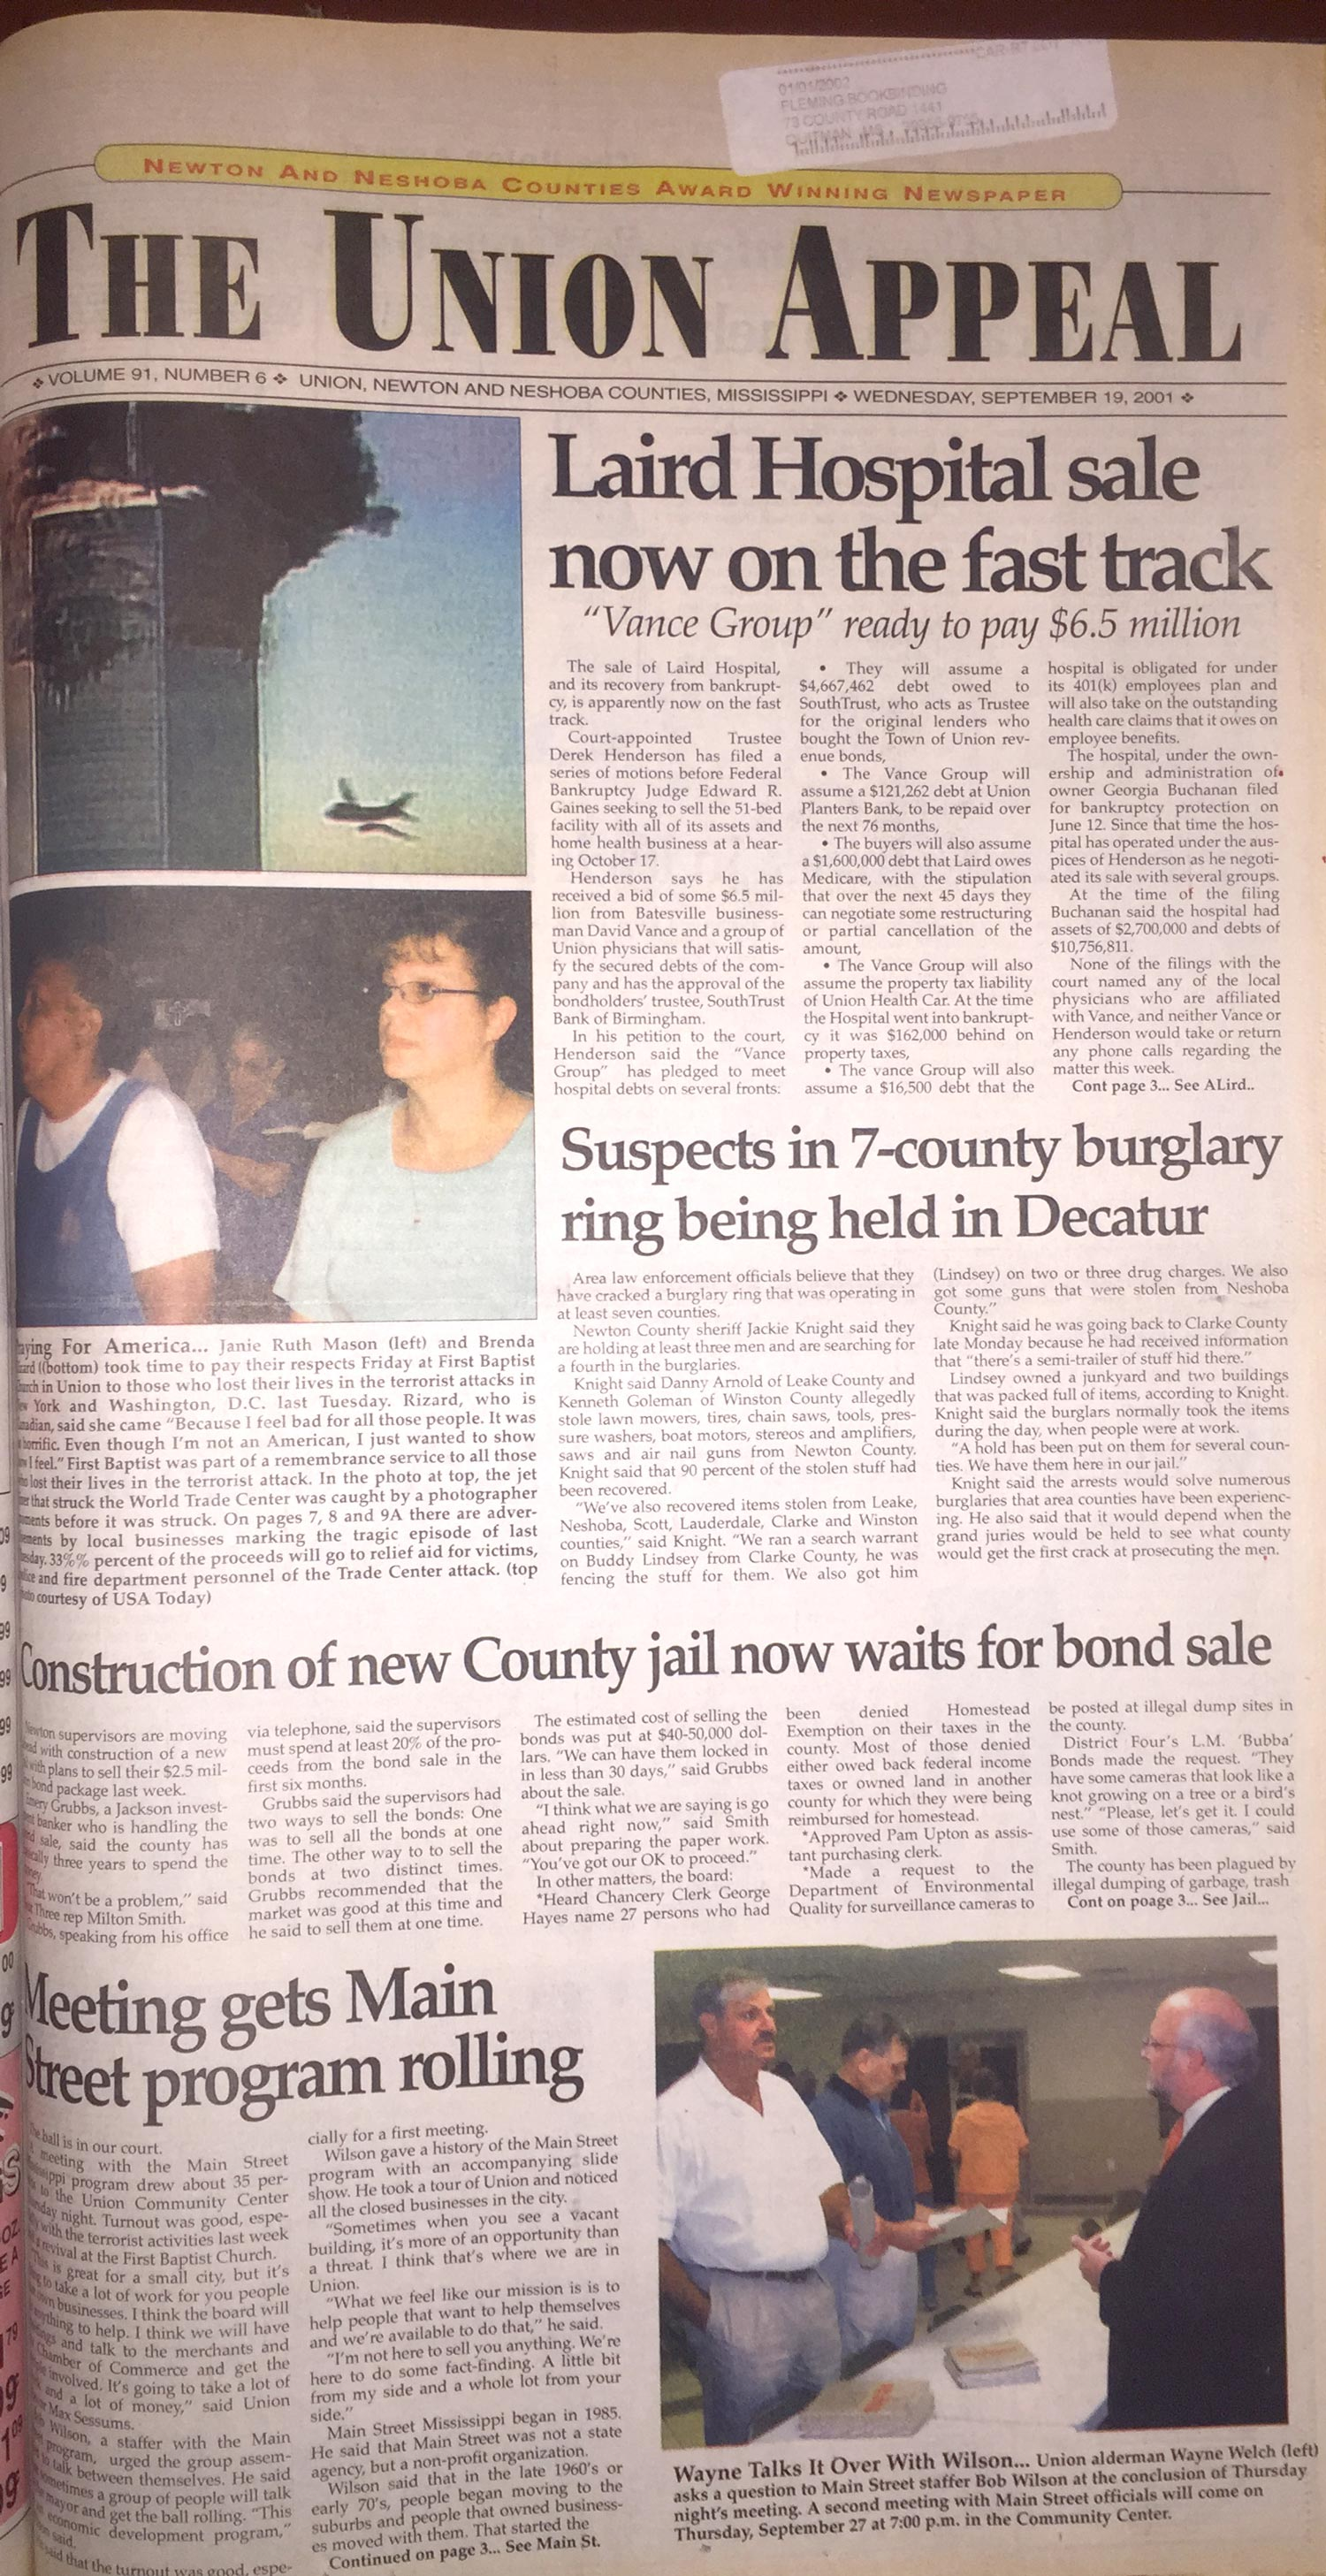 Union Appeal front page for Sept. 19, 2001